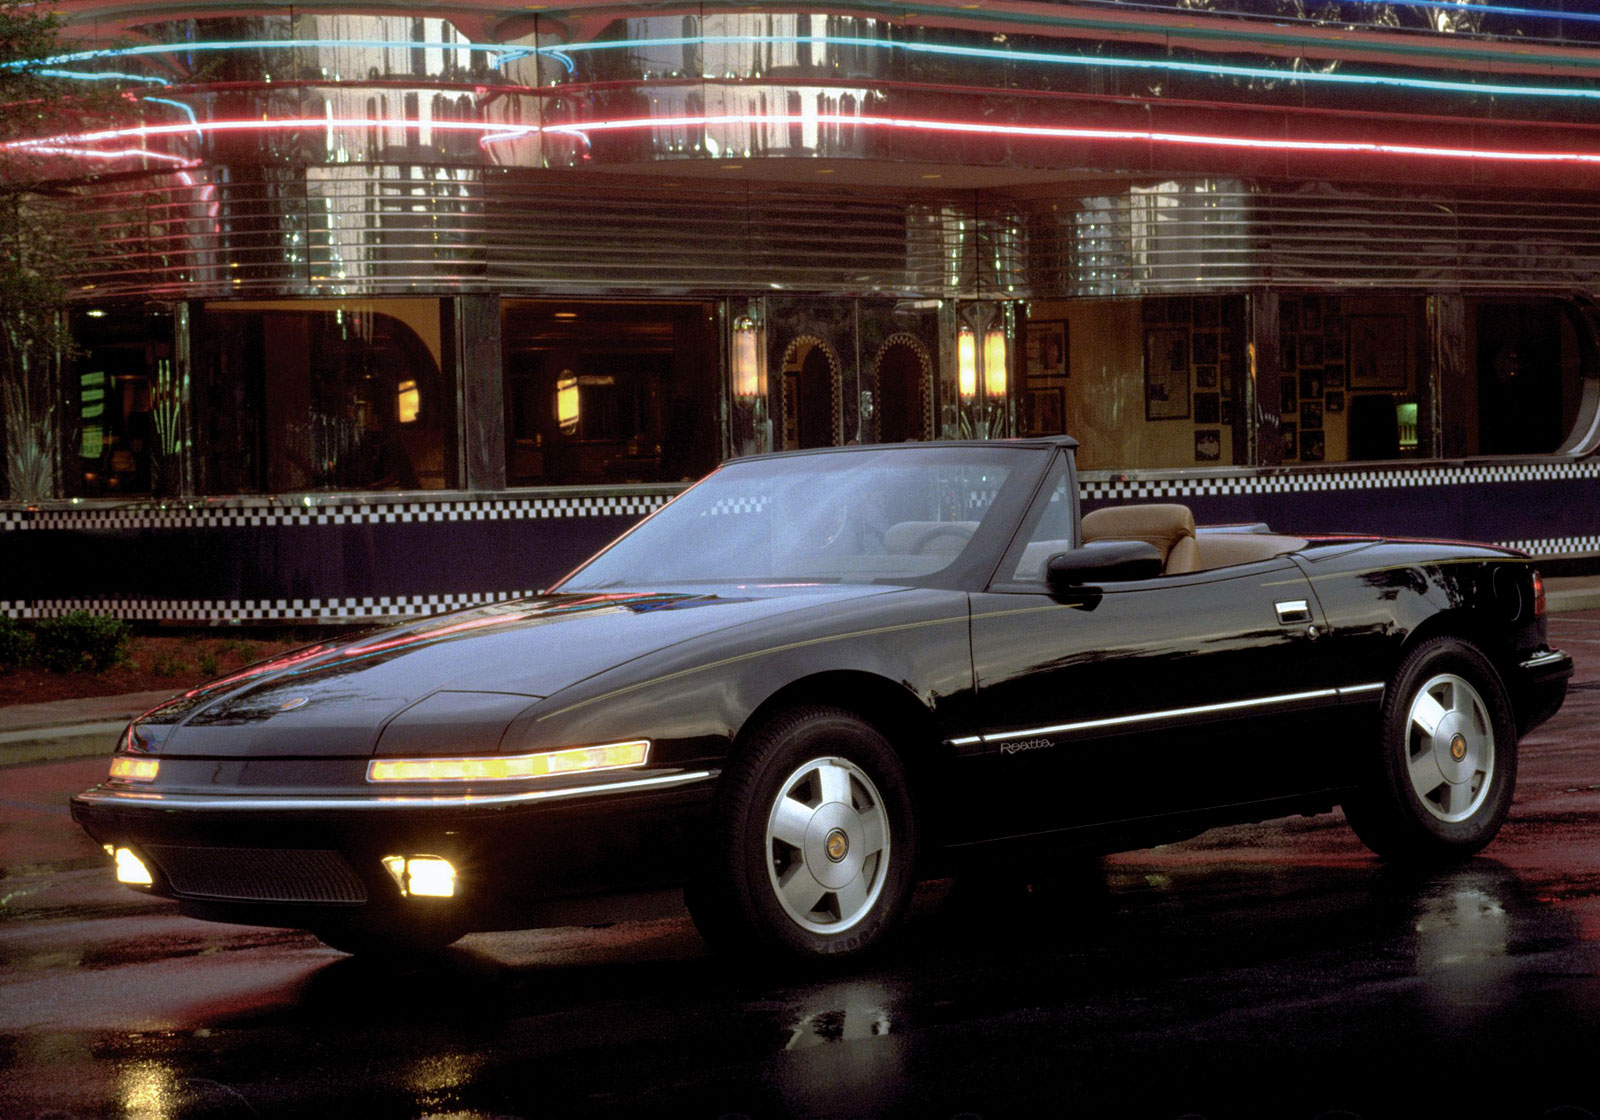 The Legend Called Gm Design Home C2 Bb 1993 Ford Mustang Convertible Engine Partment Fuse Box 1980s 1988 Buick Reatta